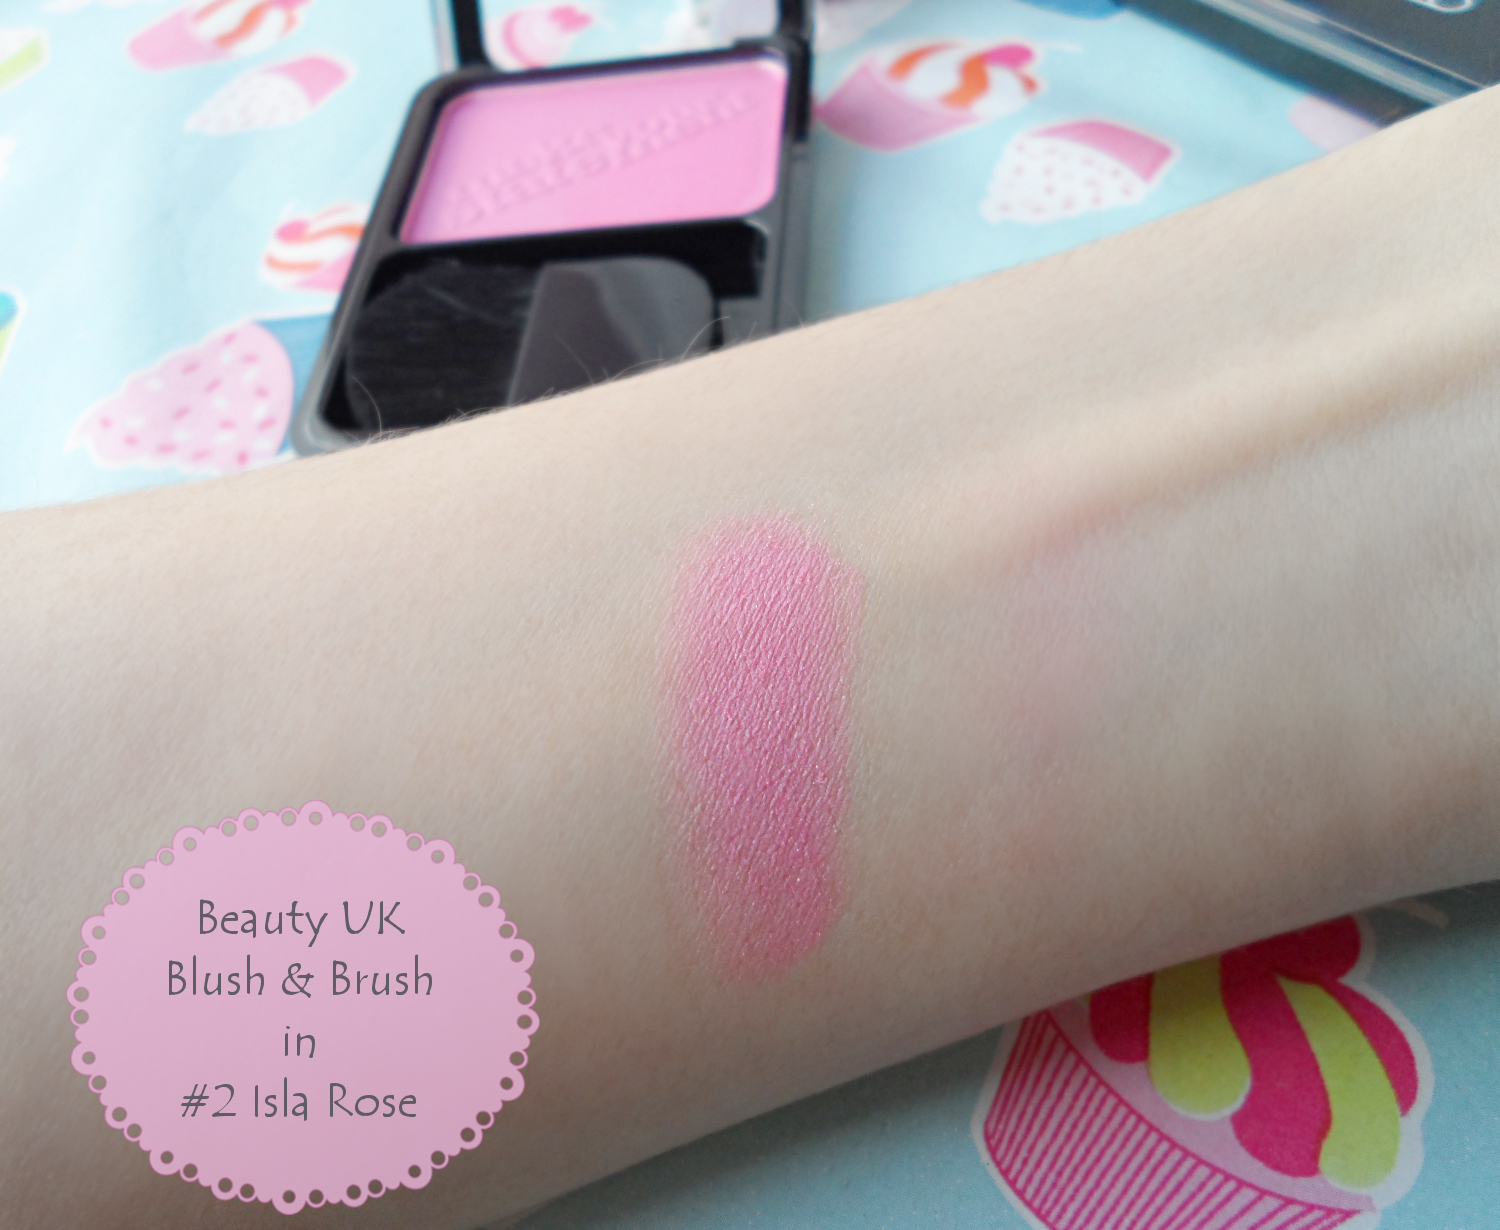 Beauty UK cosmetics review Beauty UK Blush & Brush Review and Swatches liz breygel january girl